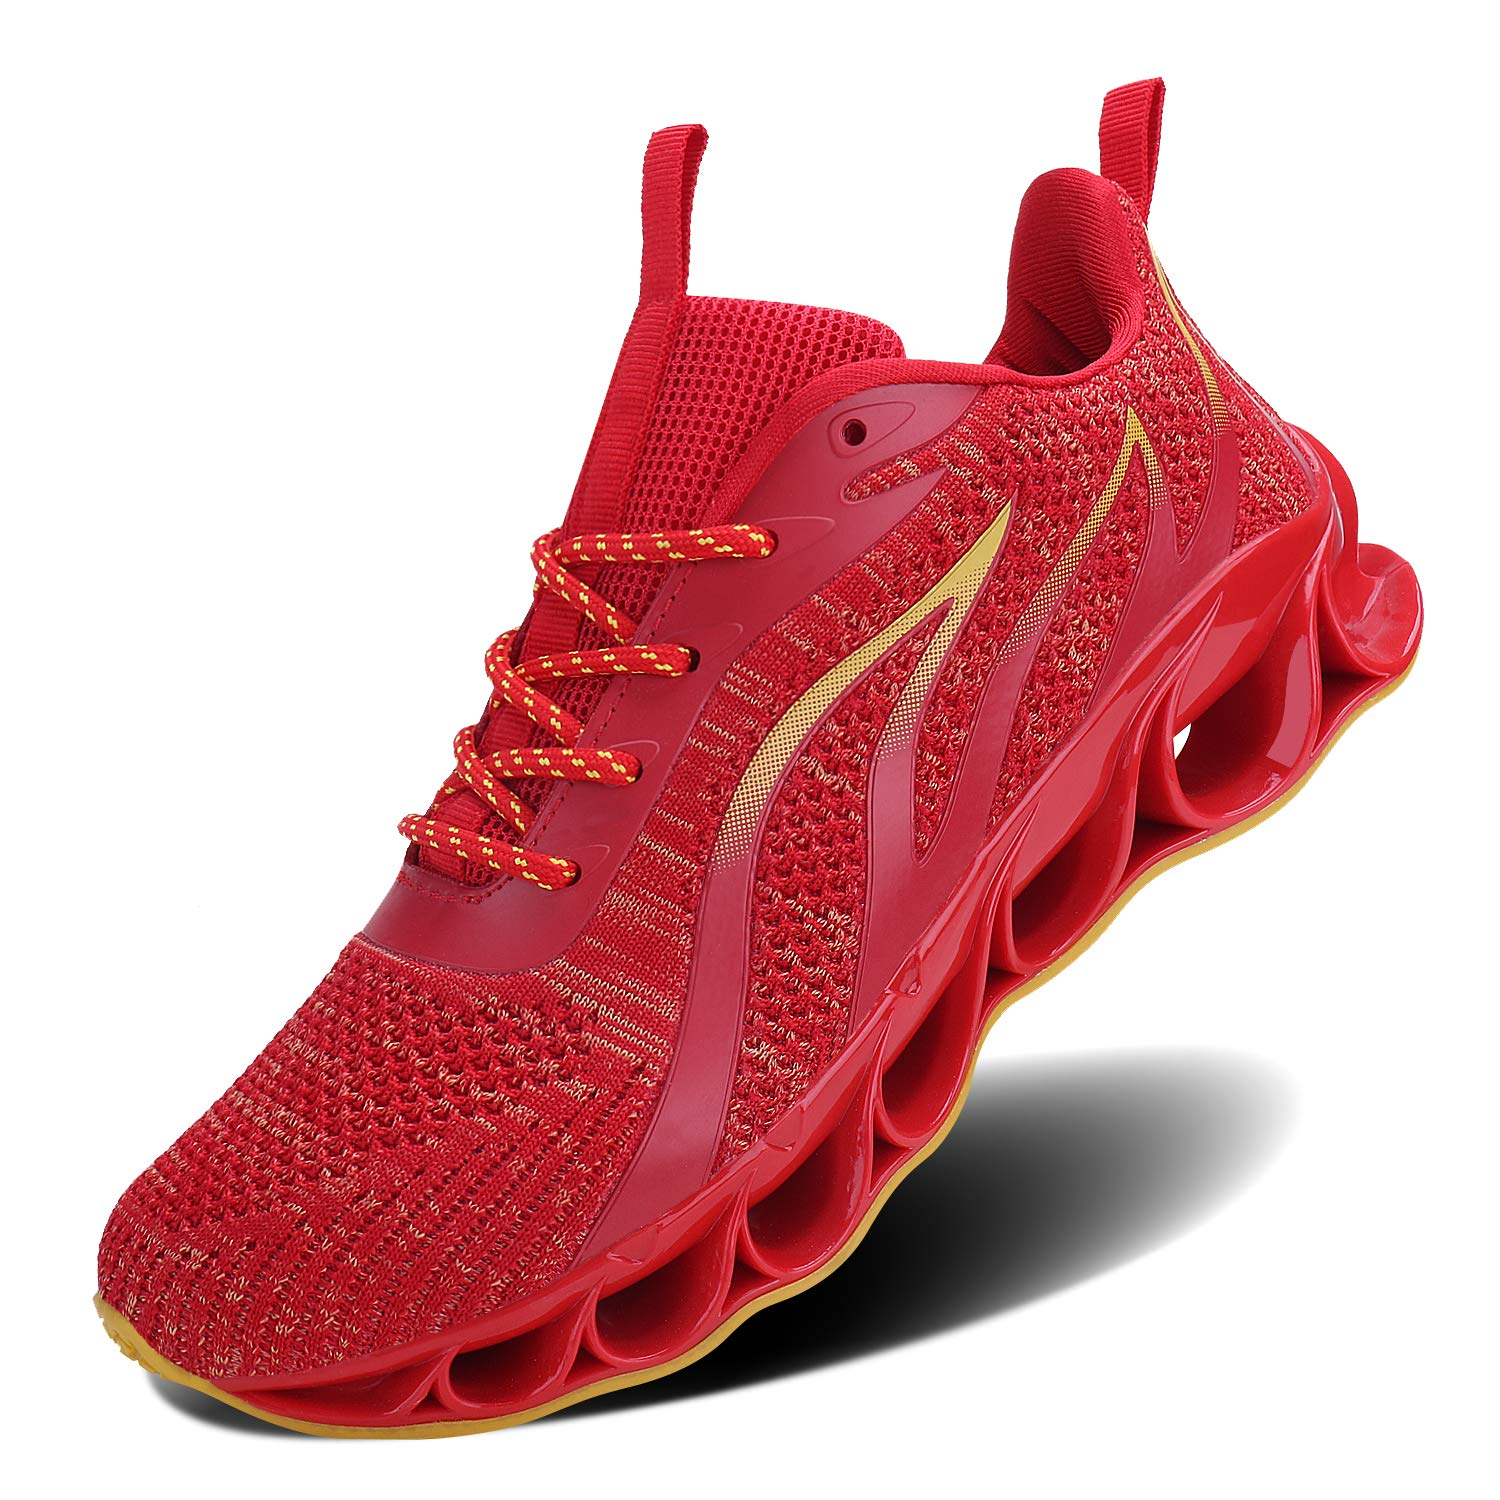 JointlyCreating Mens Casual Mesh Walking Shoes Outdoor Sport Sneakers (8.5, 1-r-Red)